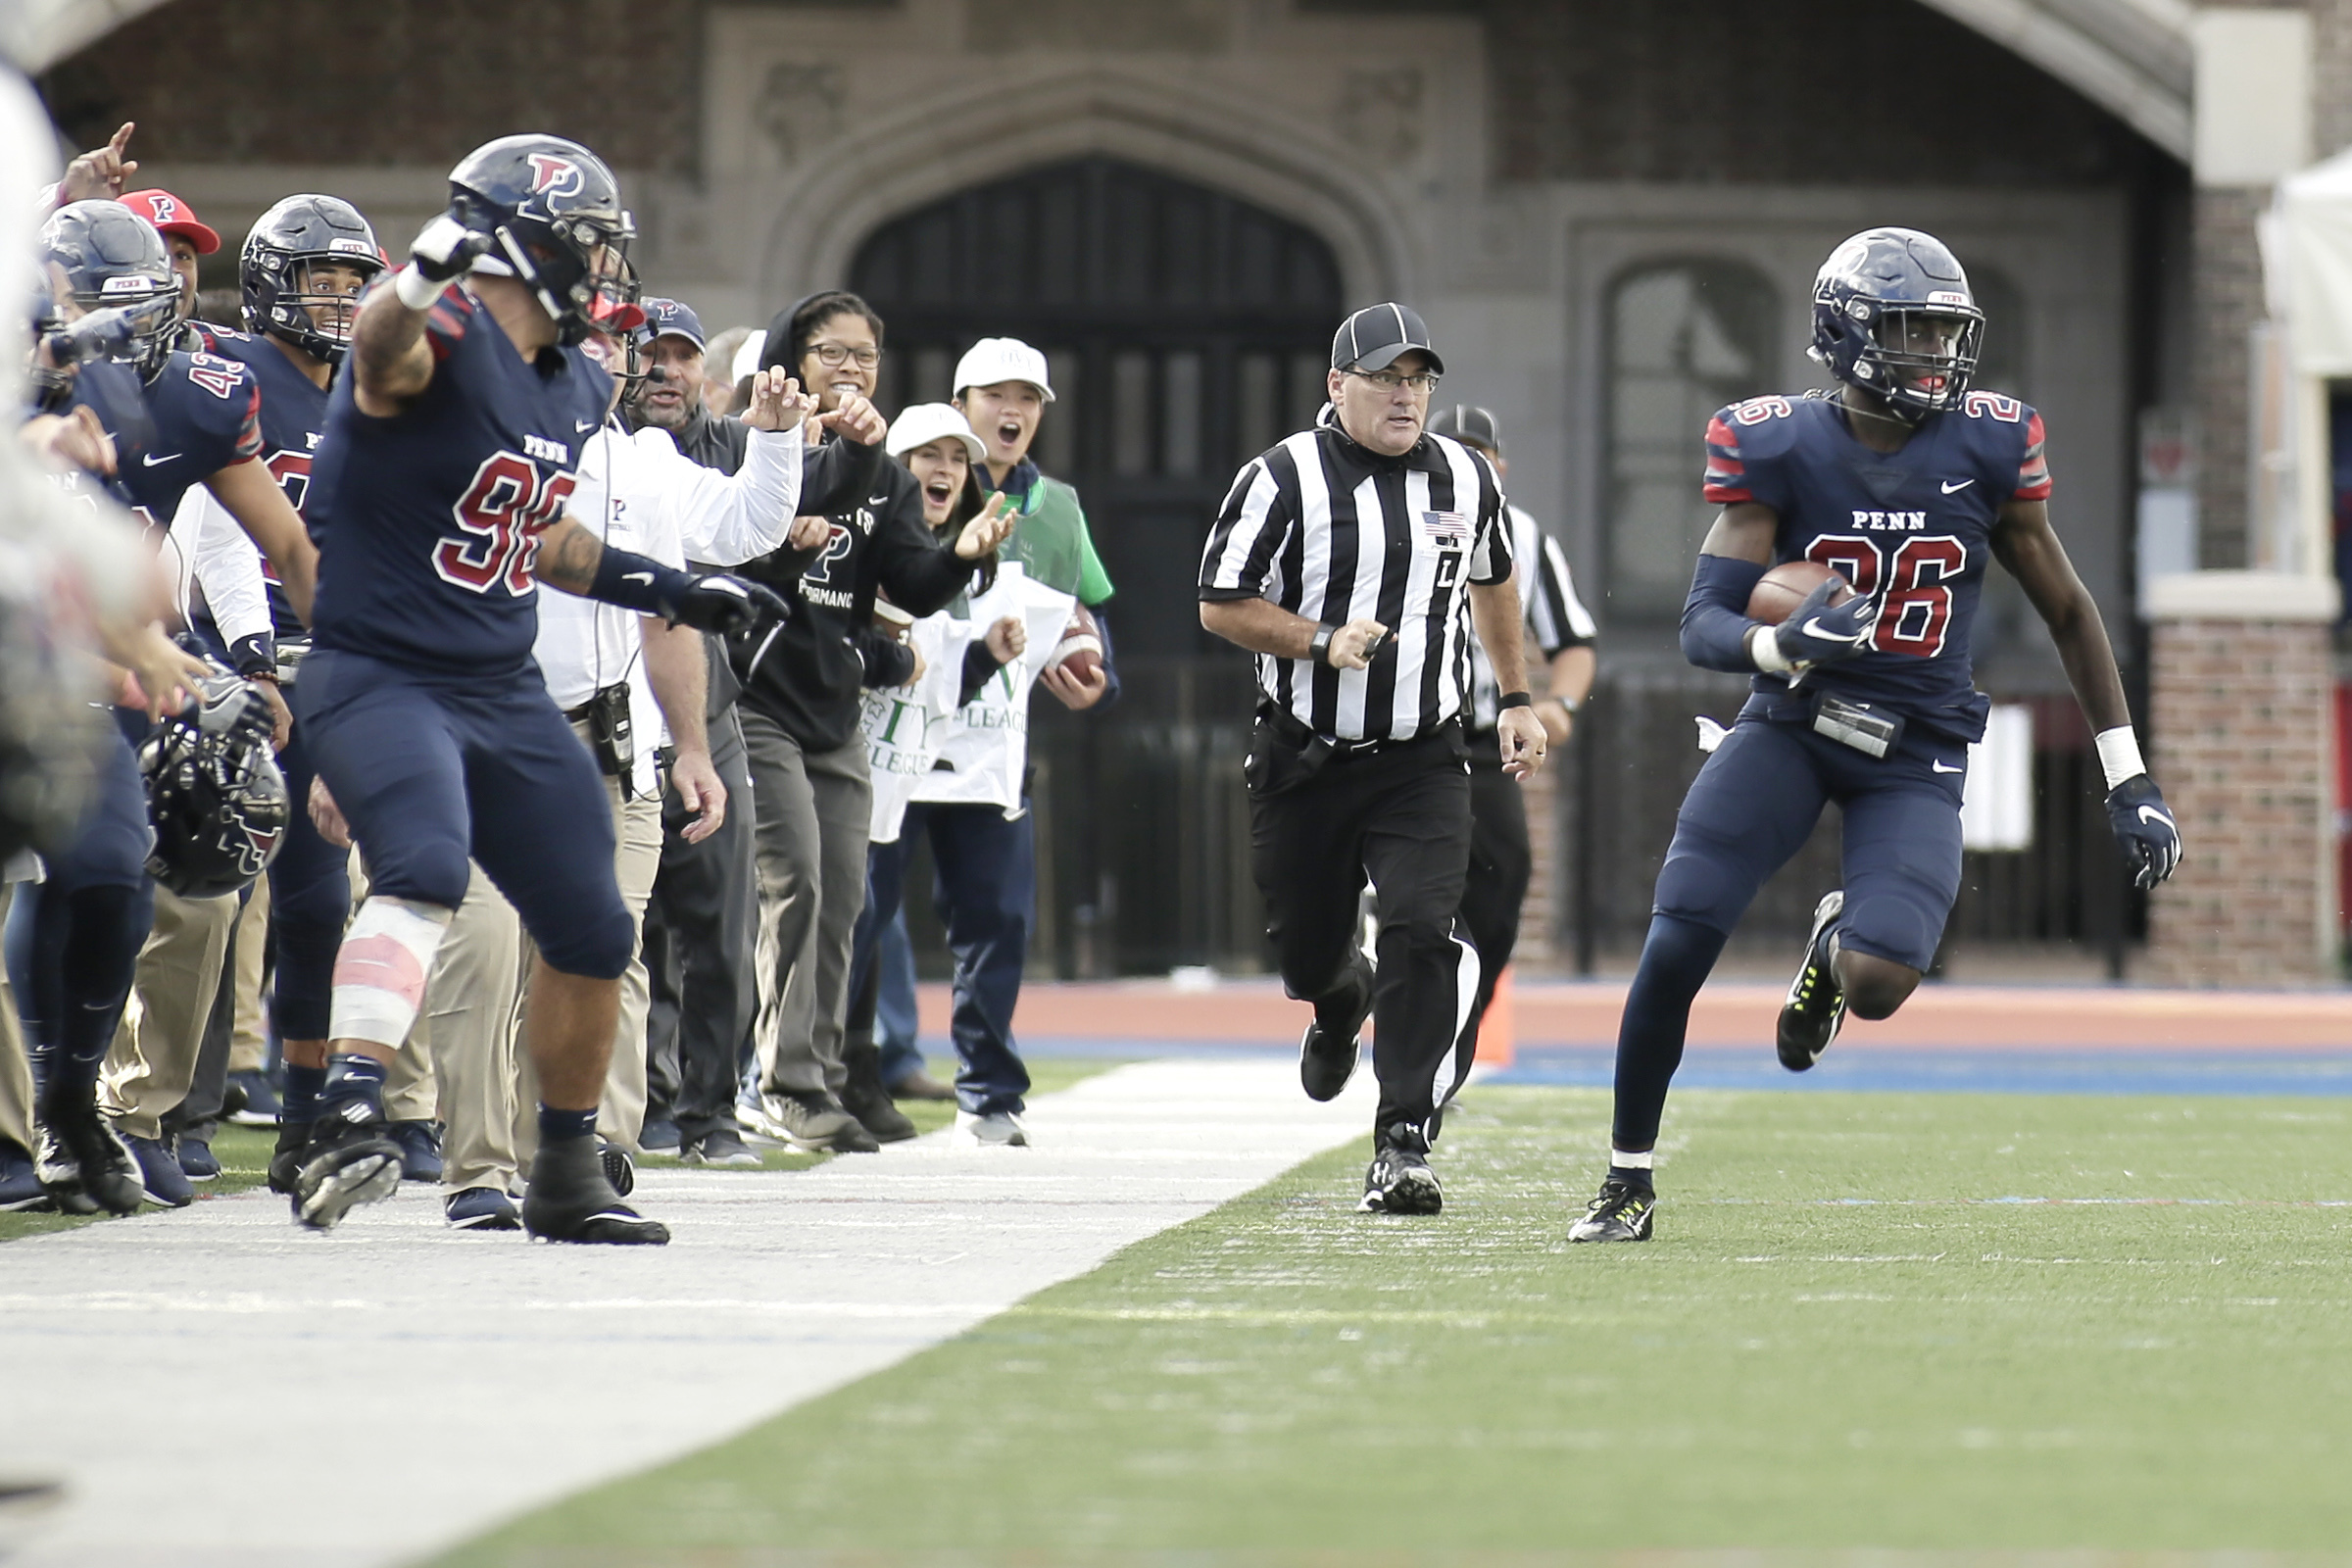 With teammates and supporters on the sidelines pointing which direction to run, Penn's # 26 Mohammed Diakite runs back his late 4th quarter interception during the Columbia at University of Penn football game at Franklin Field in Phila., Pa. on October 13, 2018. The interception preserved Penn's lead with only 7 seconds to go and Penn won the game 13-10. ELIZABETH ROBERTSON / Staff Photographer